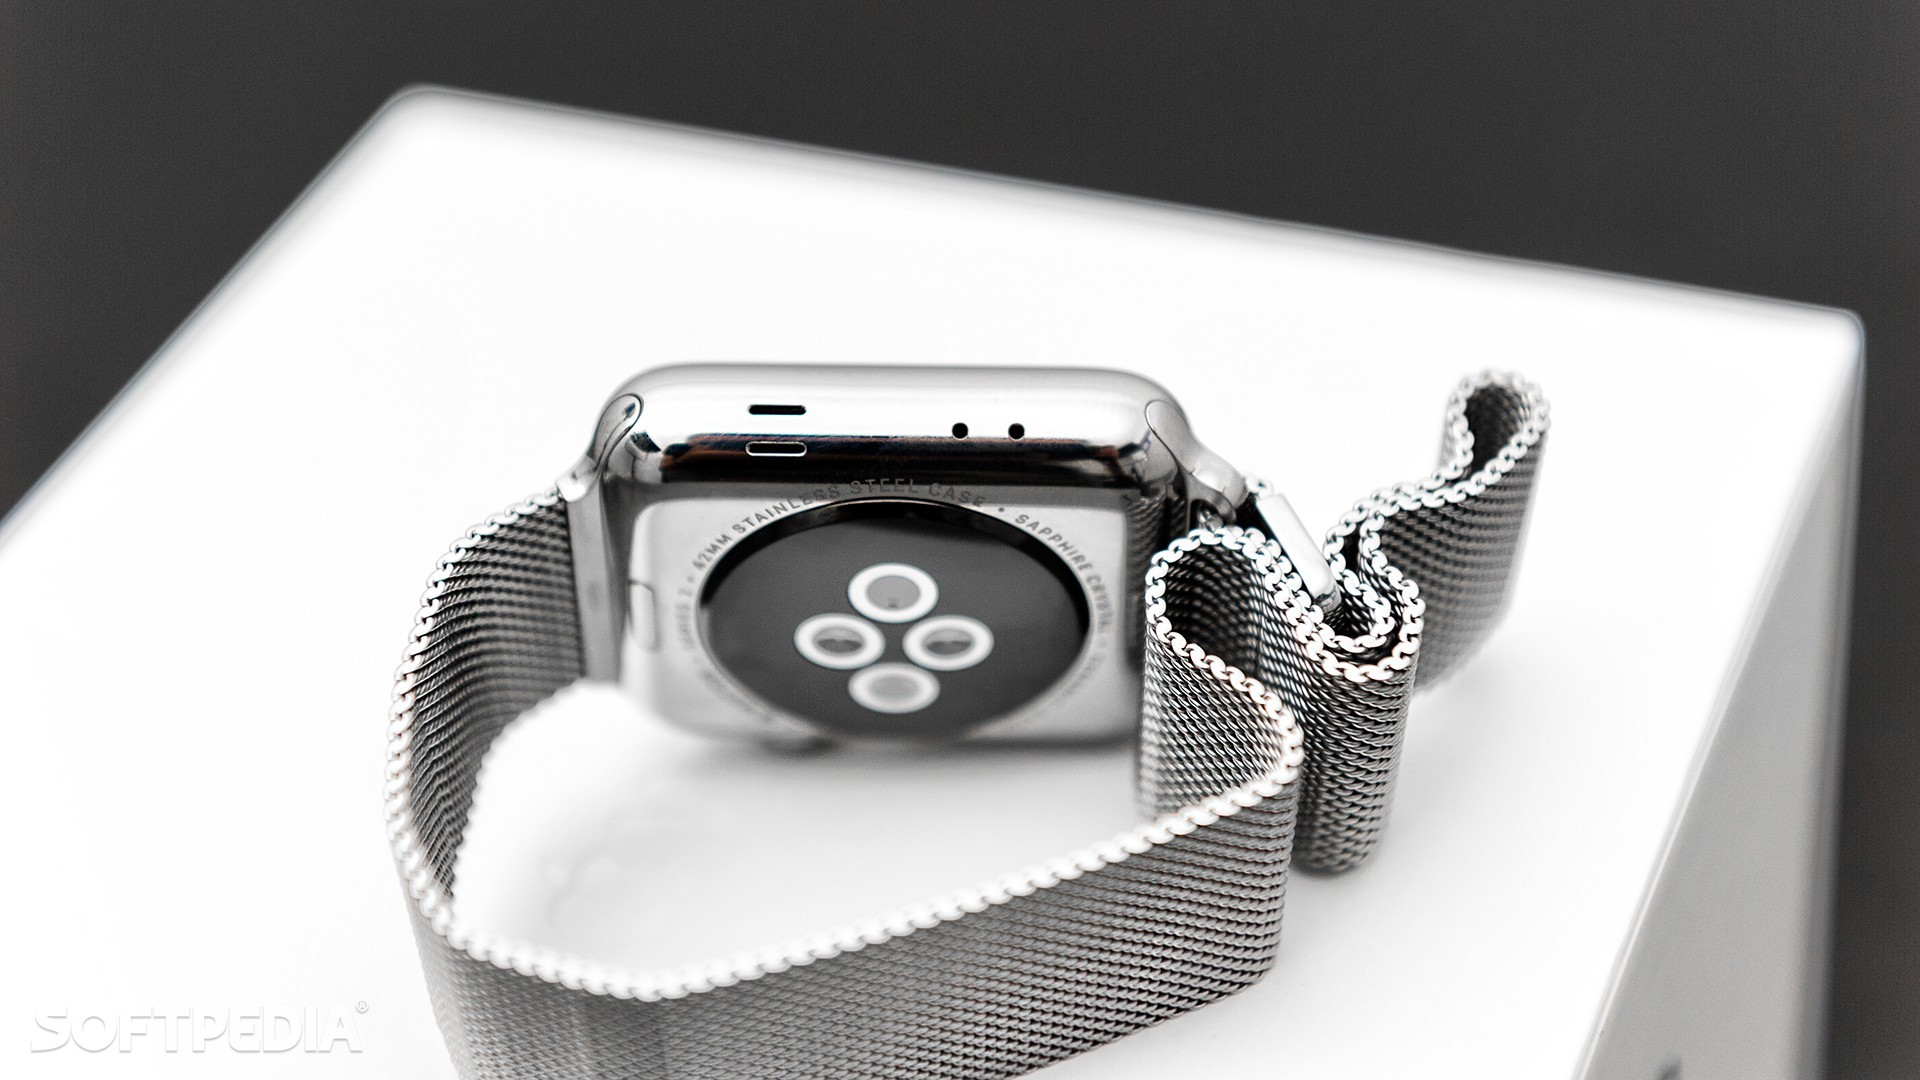 Apple Watch to have MicroLED displays in 2020, says new report